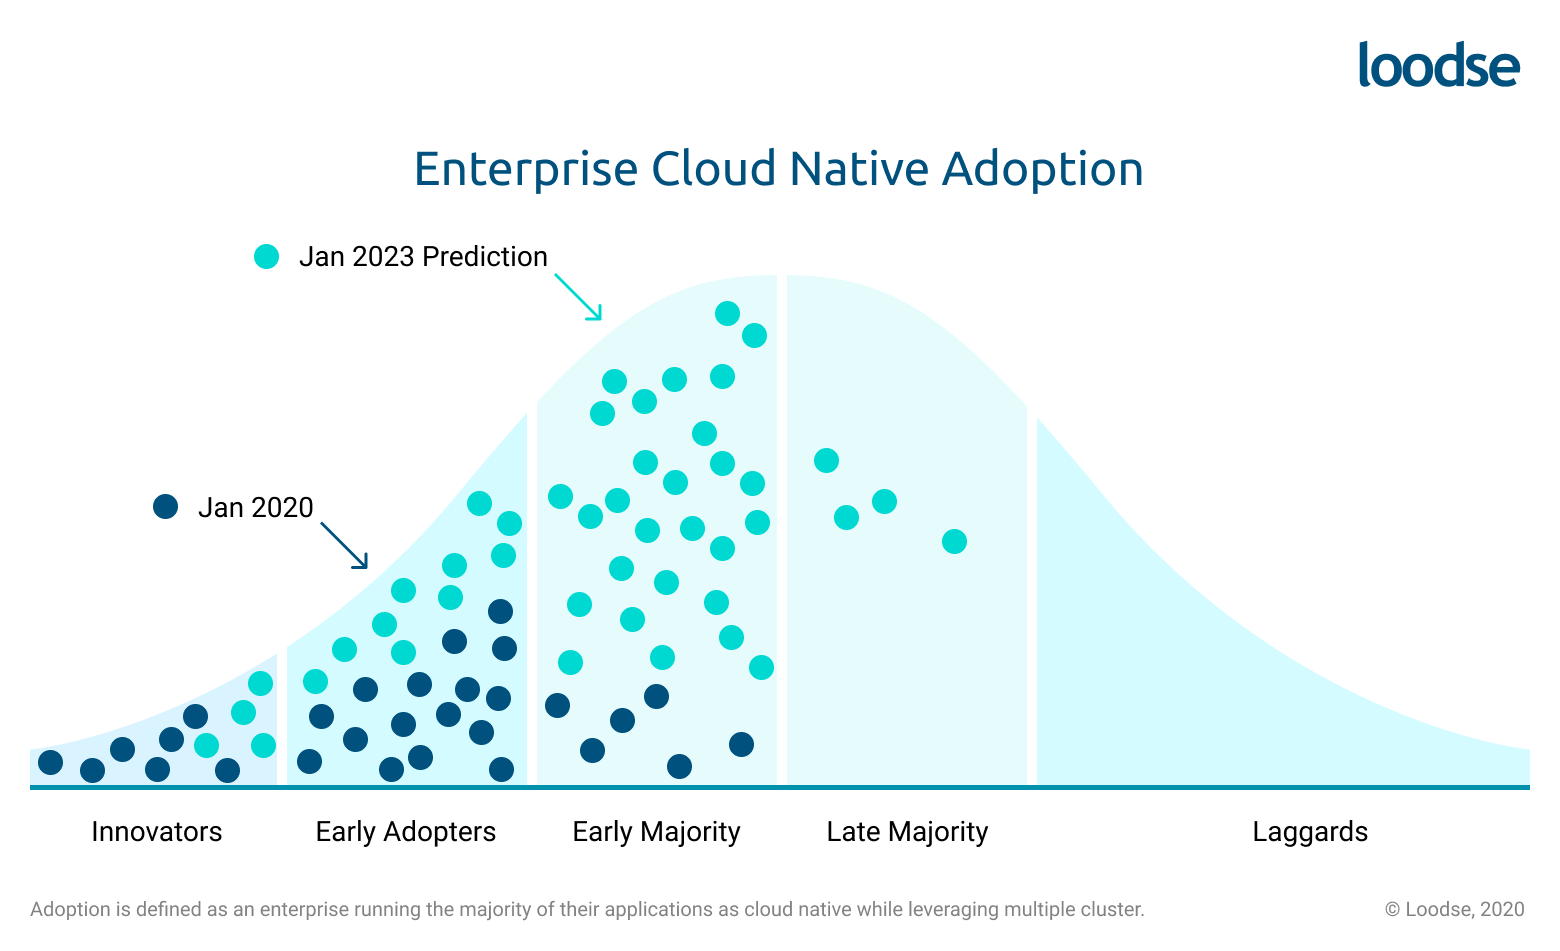 Enterprise cloud native adoption 2023 prediction